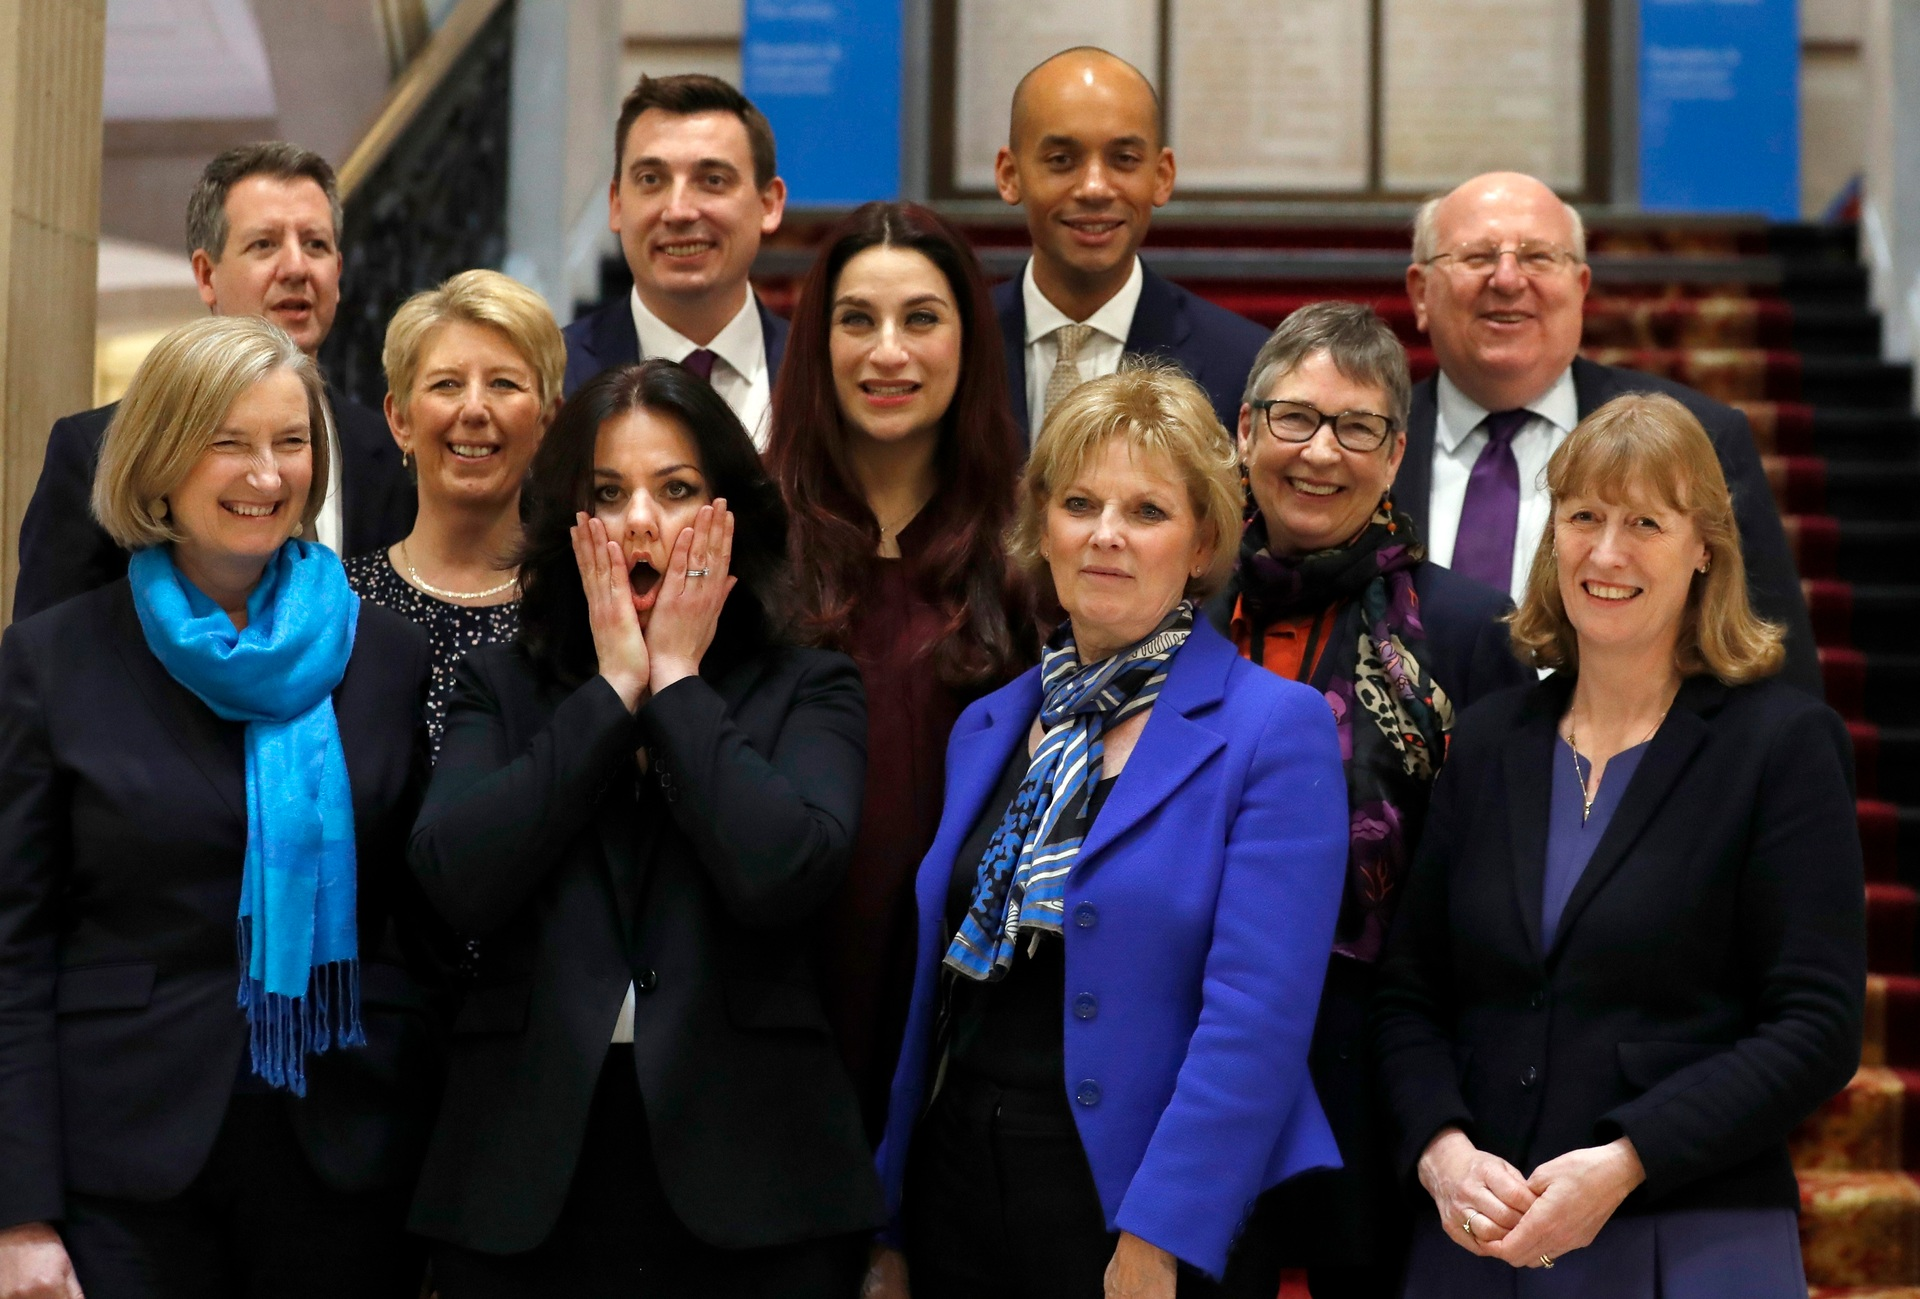 Disgusted by Brexit hardliners, three MPs abandon the Tories